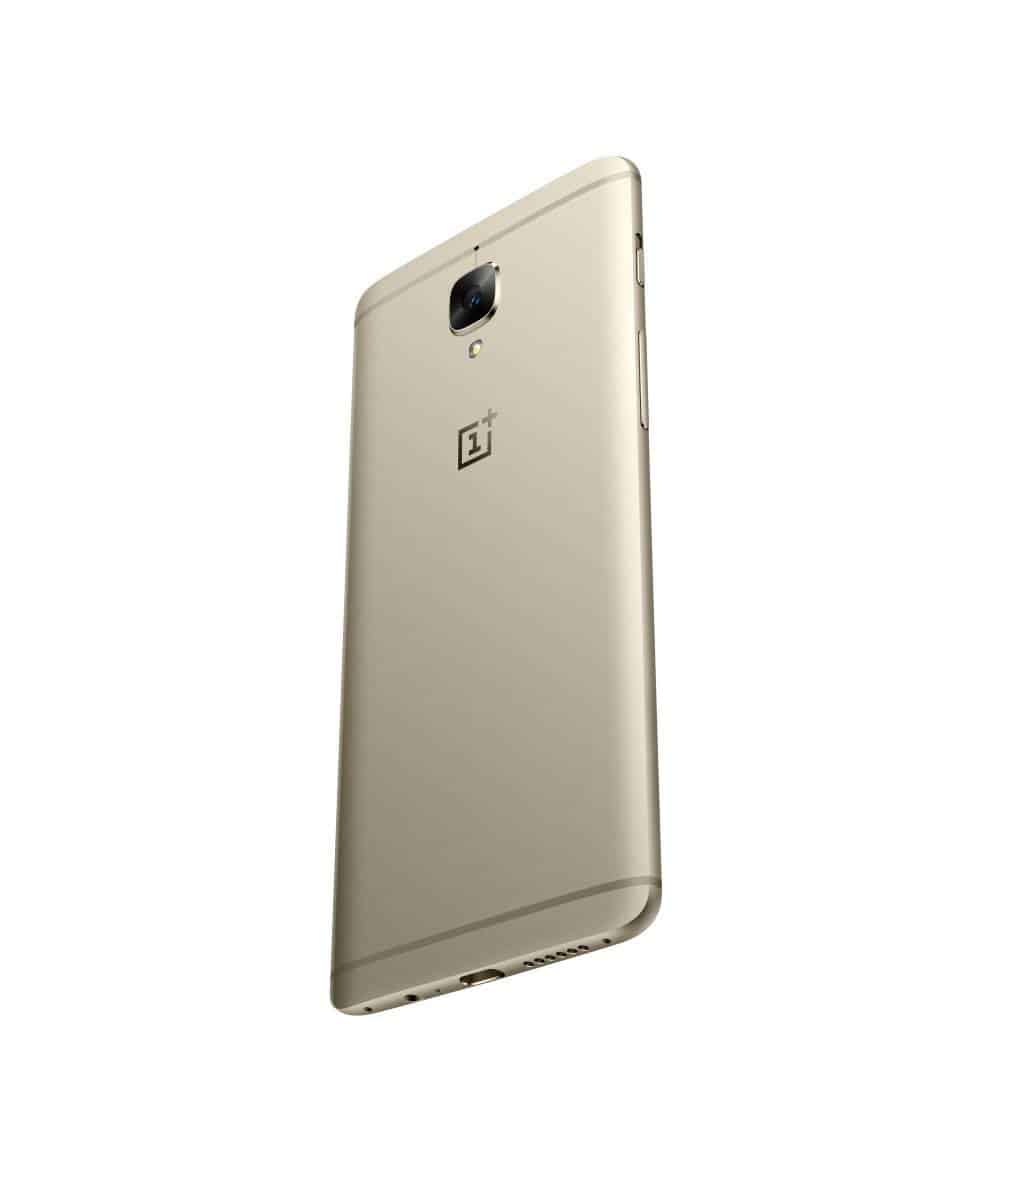 OnePlus 3 Soft Gold Press AH 16